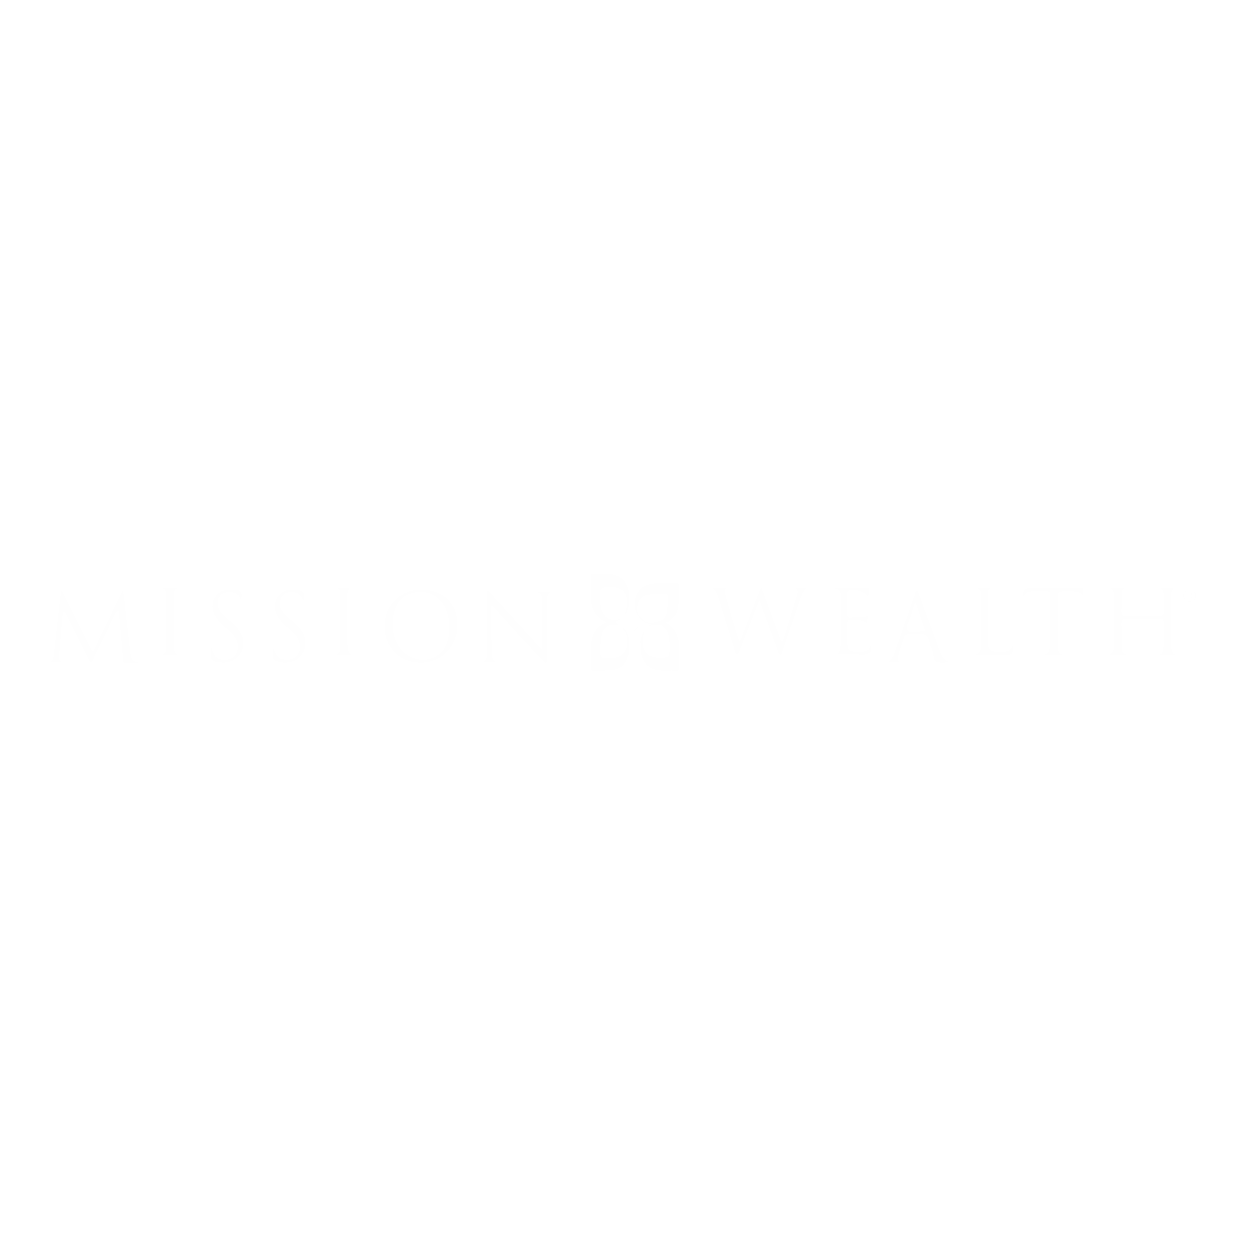 logo-mission-wealth-white@2x.png